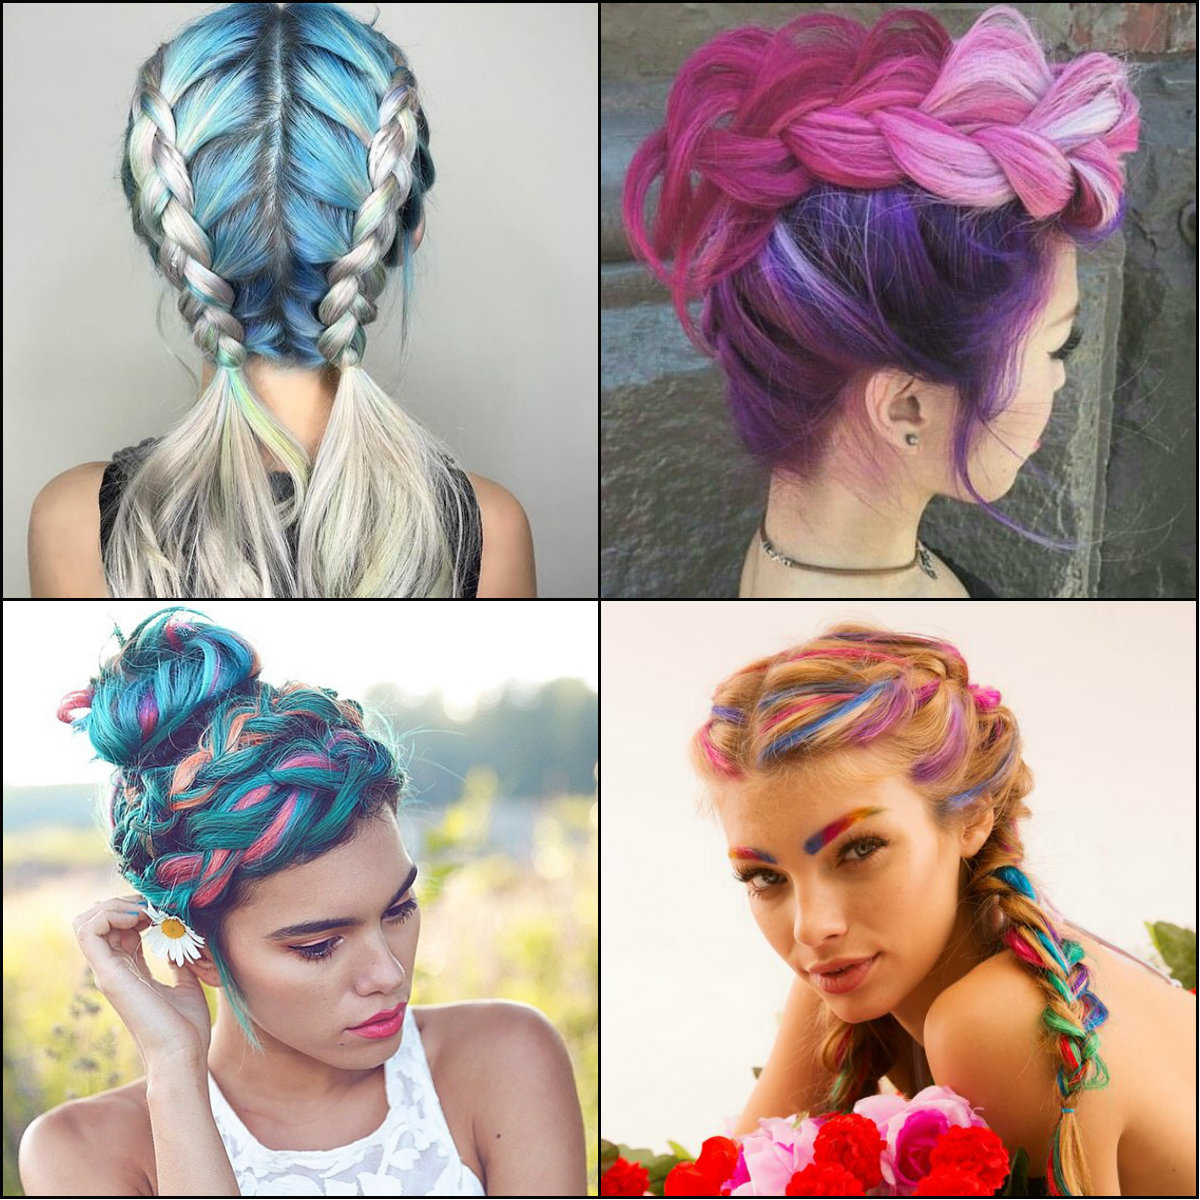 Impressive Pastel Color Braids Hairstyles You Wont Miss Out